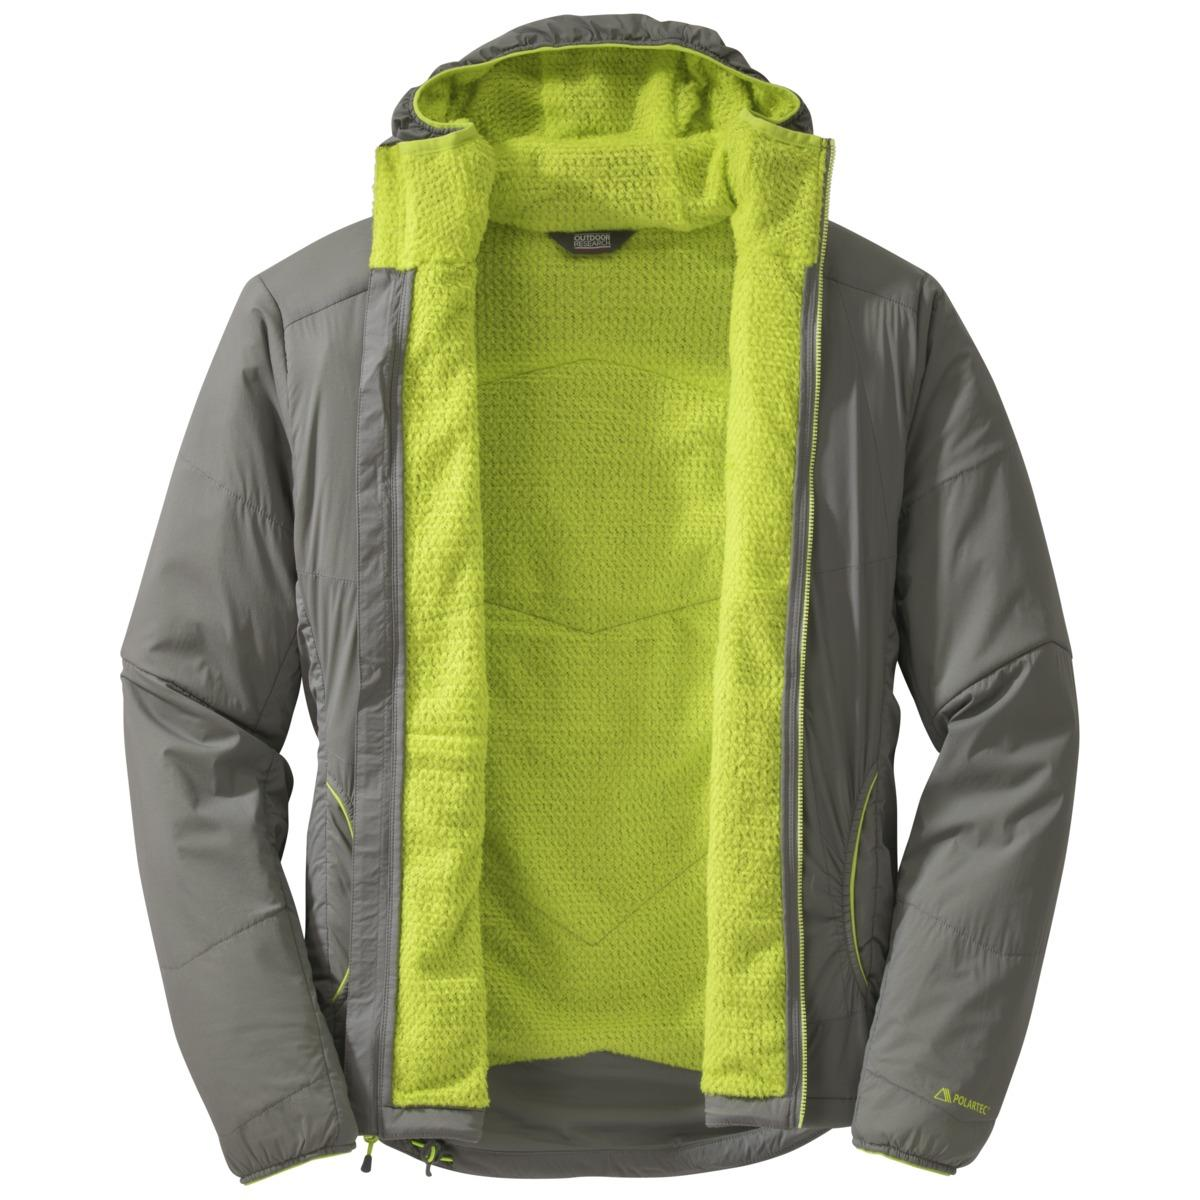 d175c2b1237 Amazon.com  Outdoor Research Men s Ascendant Hoody  Clothing